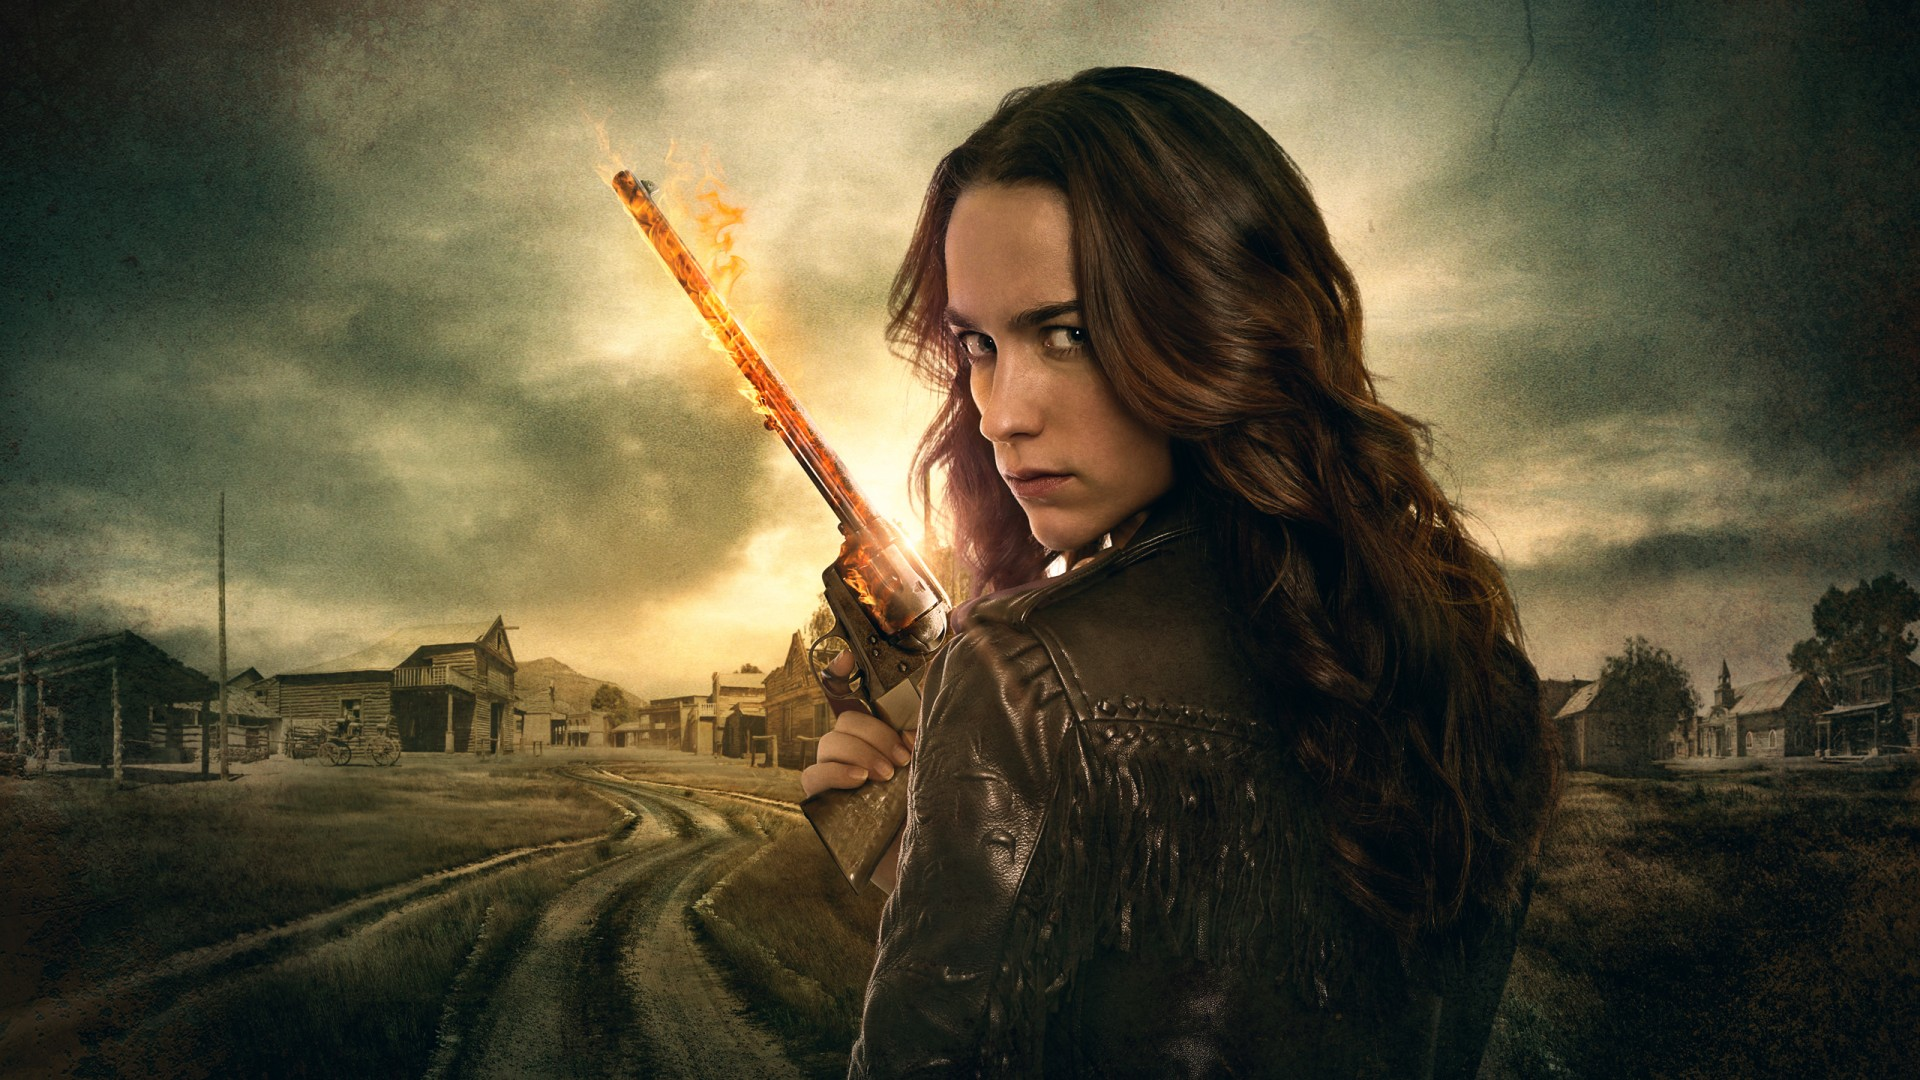 Cute Girl Wallpapers For Iphone Melanie Scrofano Wynonna Earp Wallpapers Hd Wallpapers